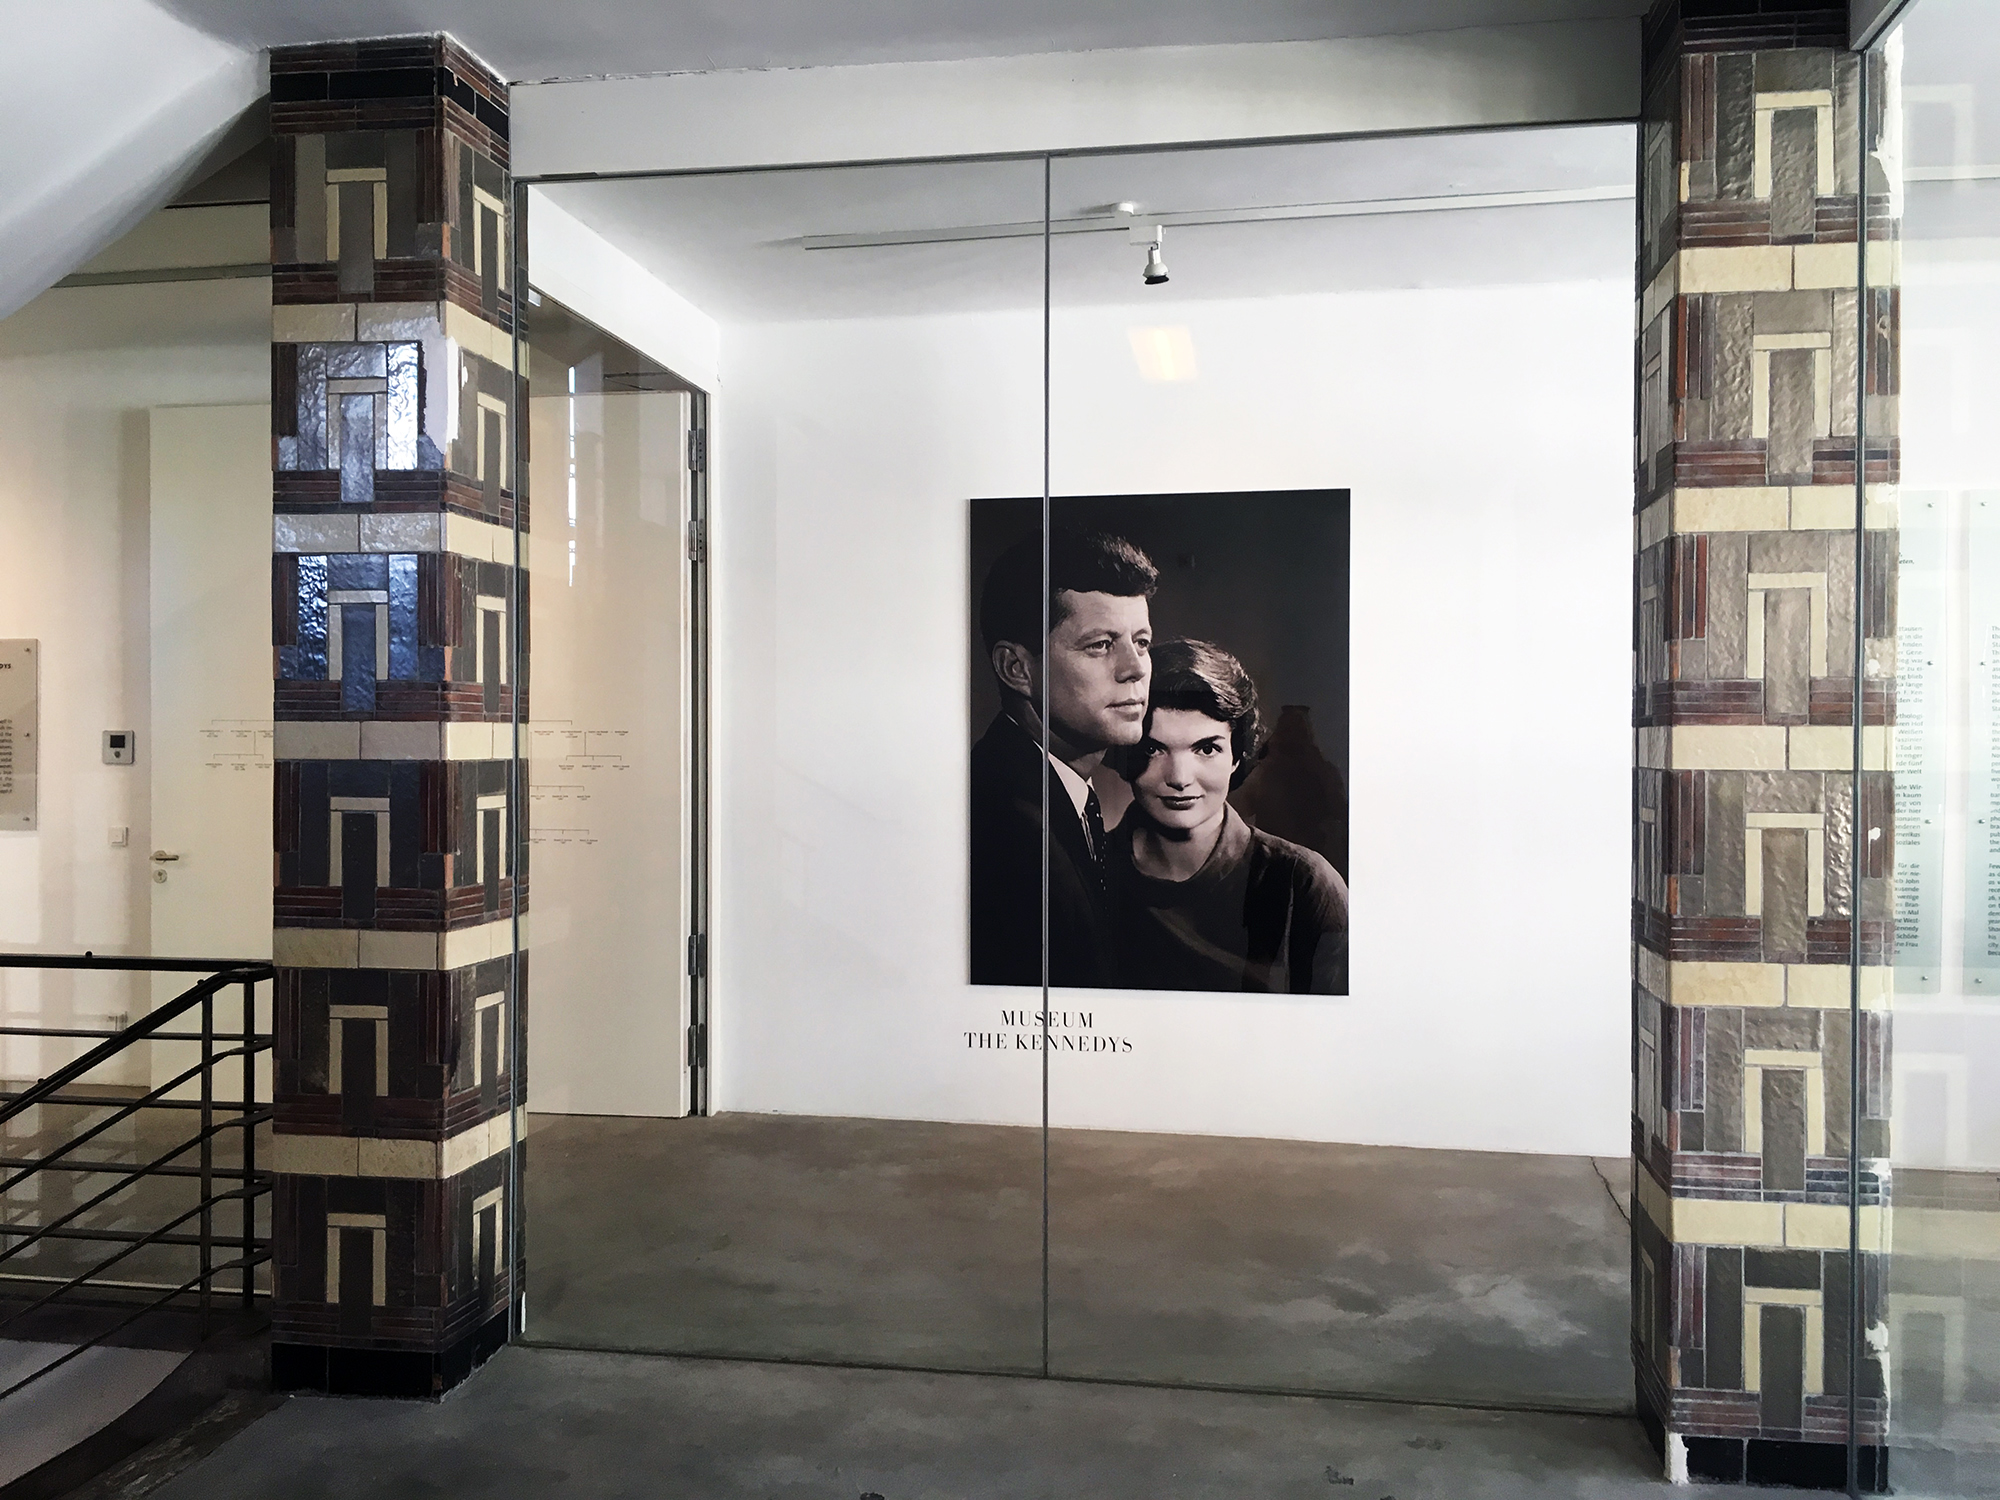 Museum The Kennedys – 'Obama, An Intimate Portrait' Exhibition